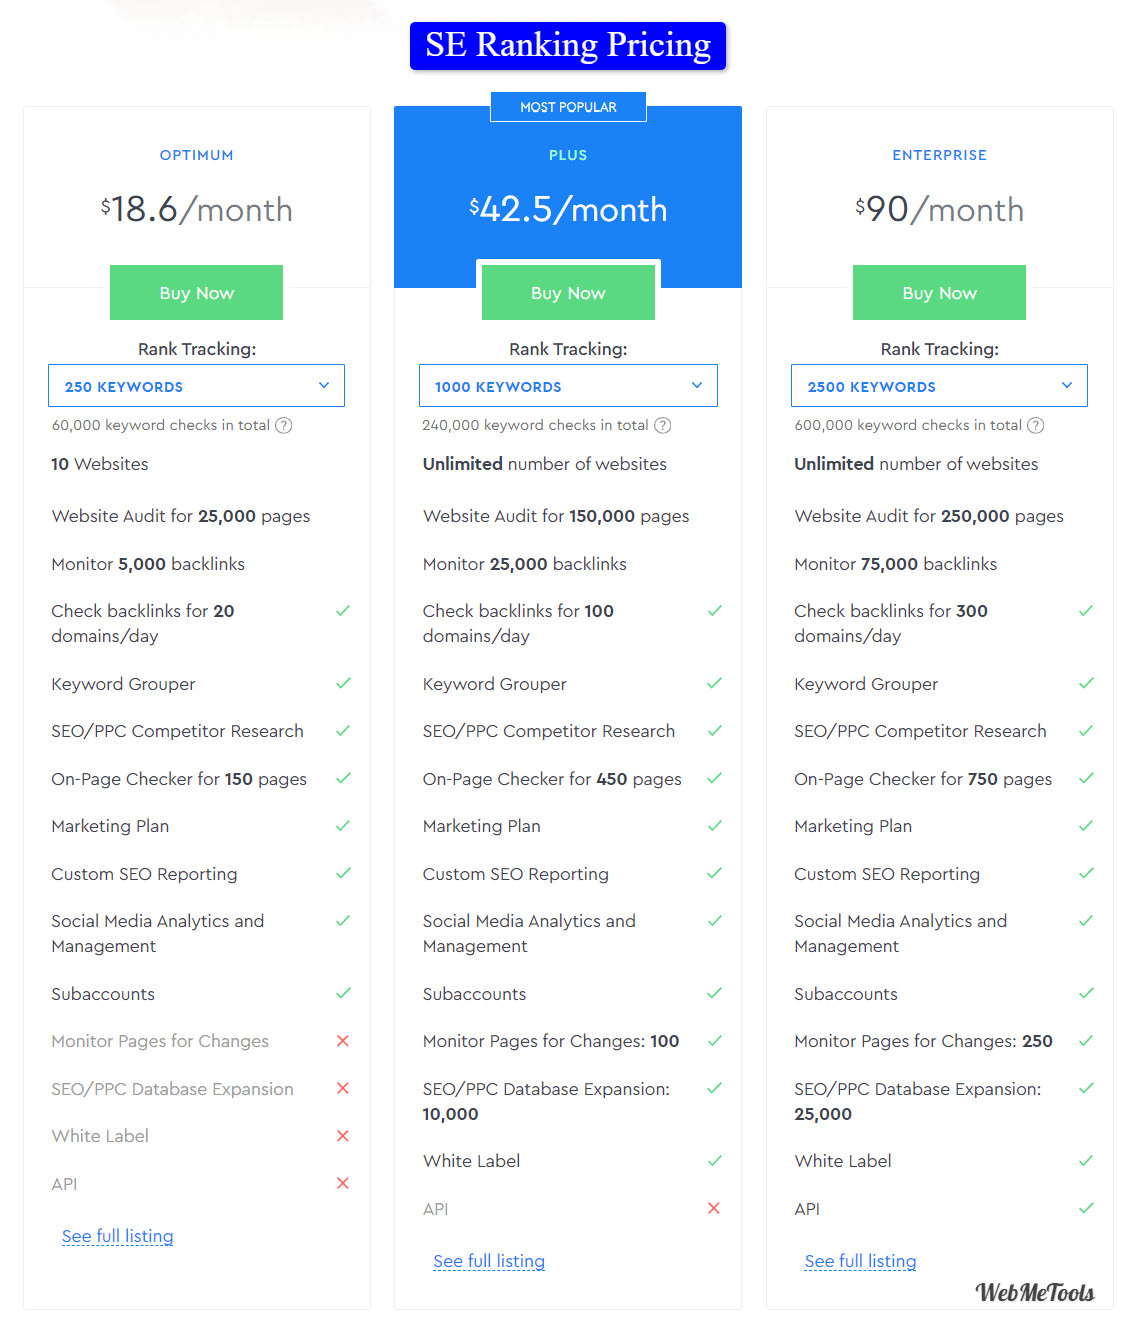 SE Ranking Pricing Plans